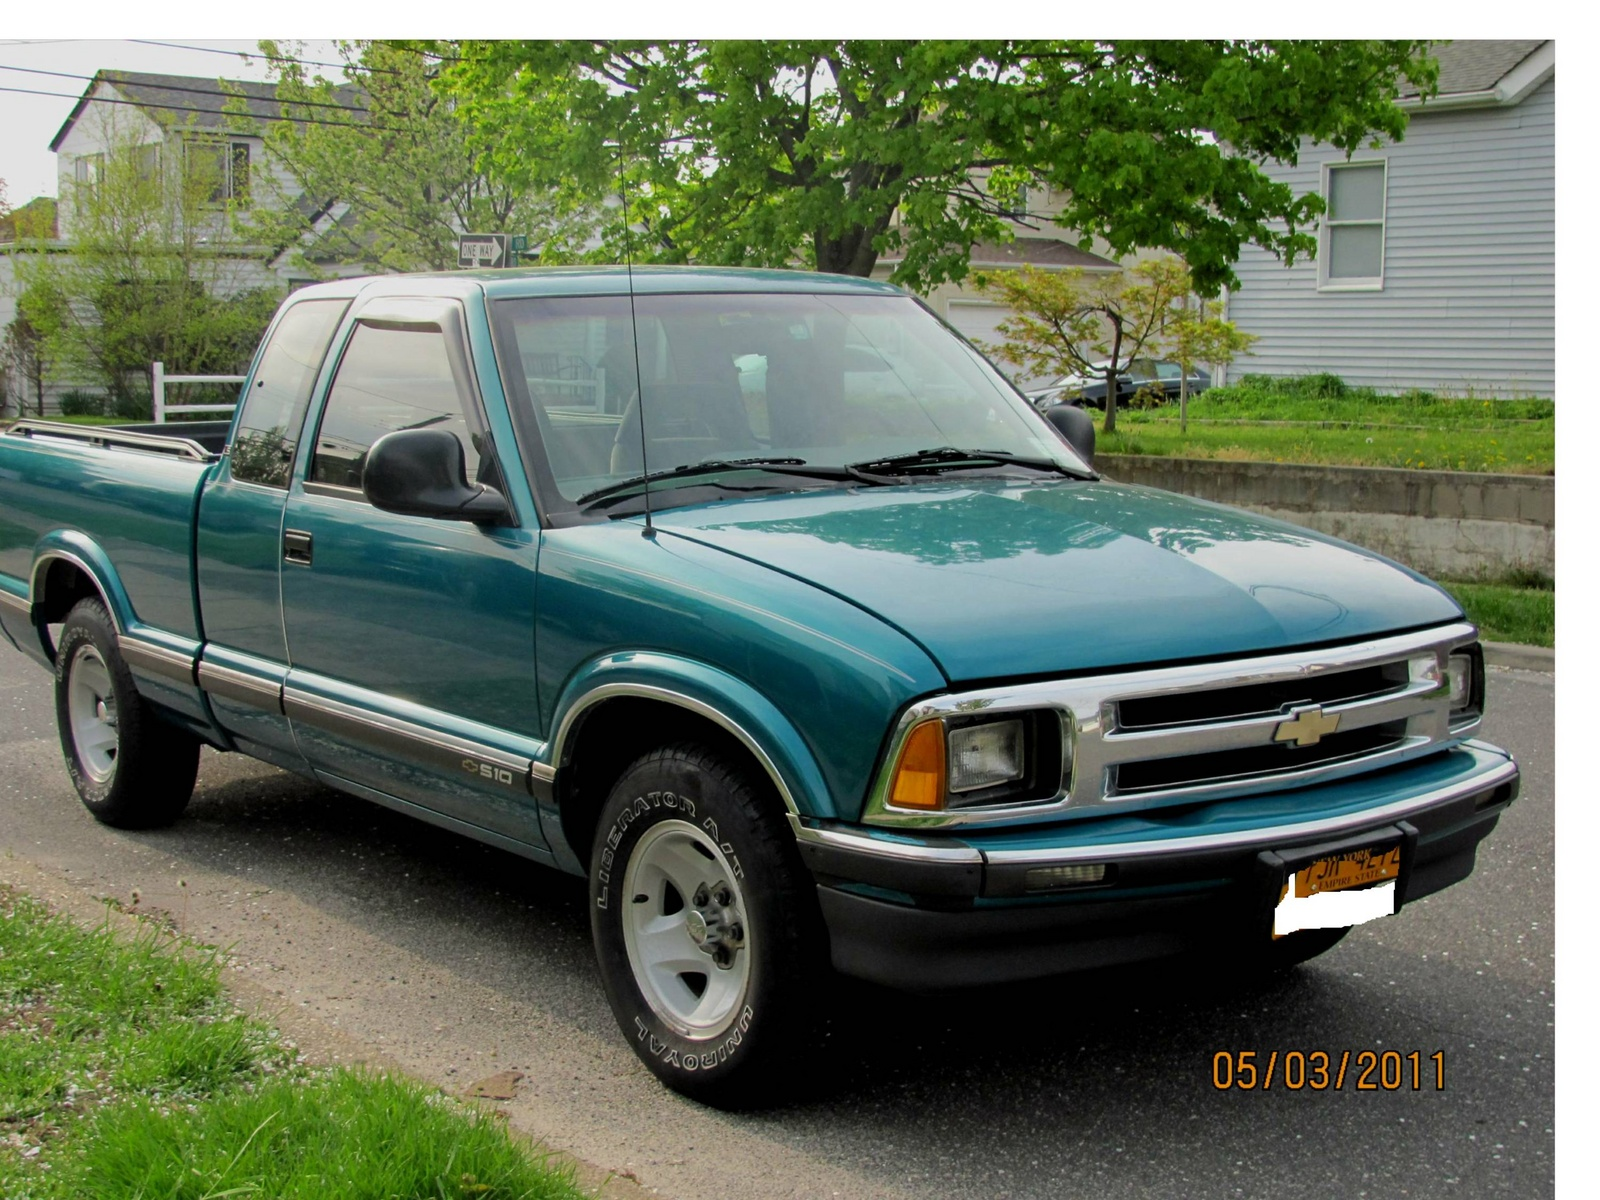 1995 chevrolet s 10 information and photos zombiedrive. Black Bedroom Furniture Sets. Home Design Ideas